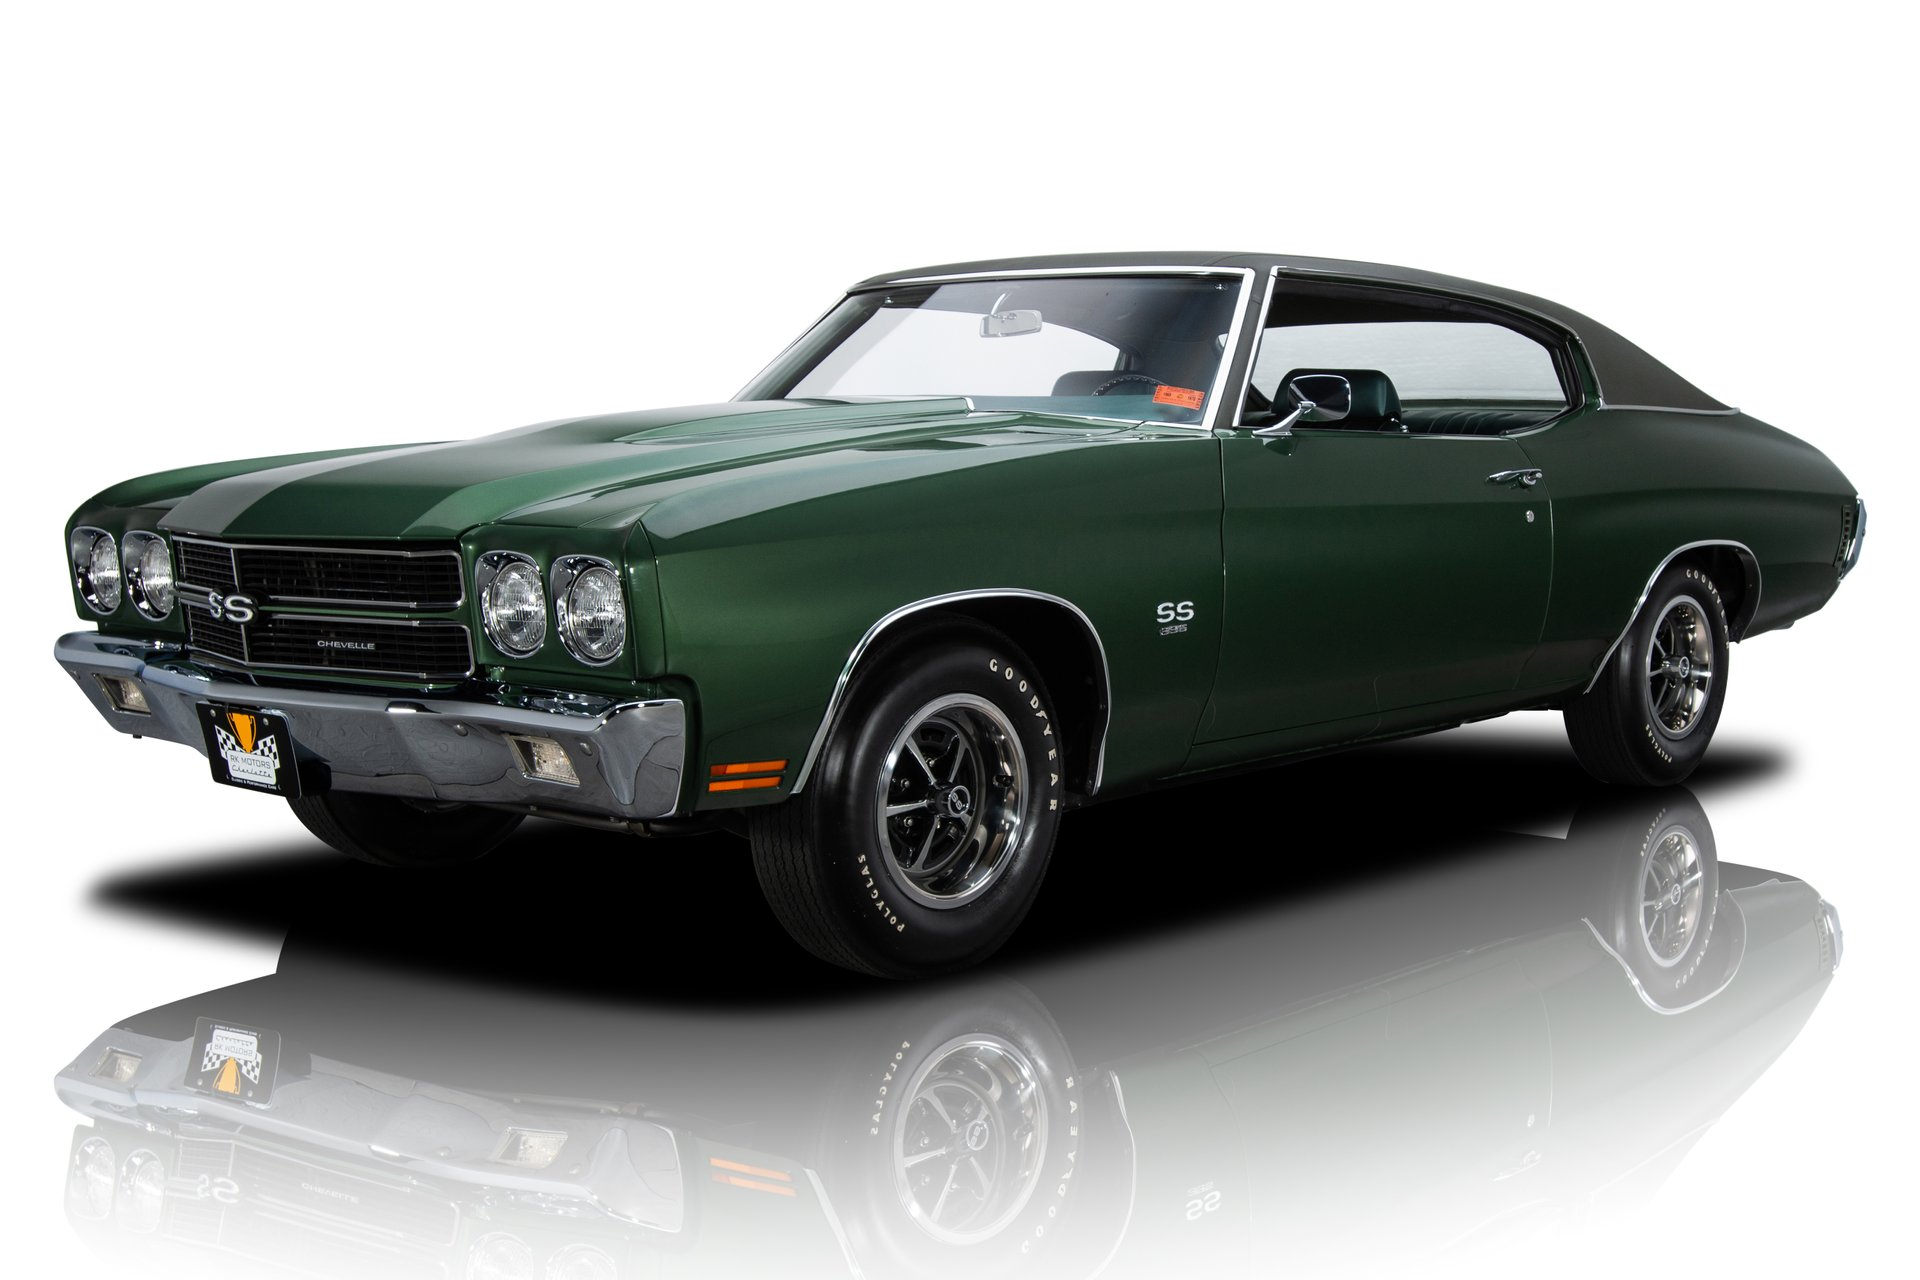 136177 1970 Chevrolet Chevelle RK Motors Classic Cars for Sale